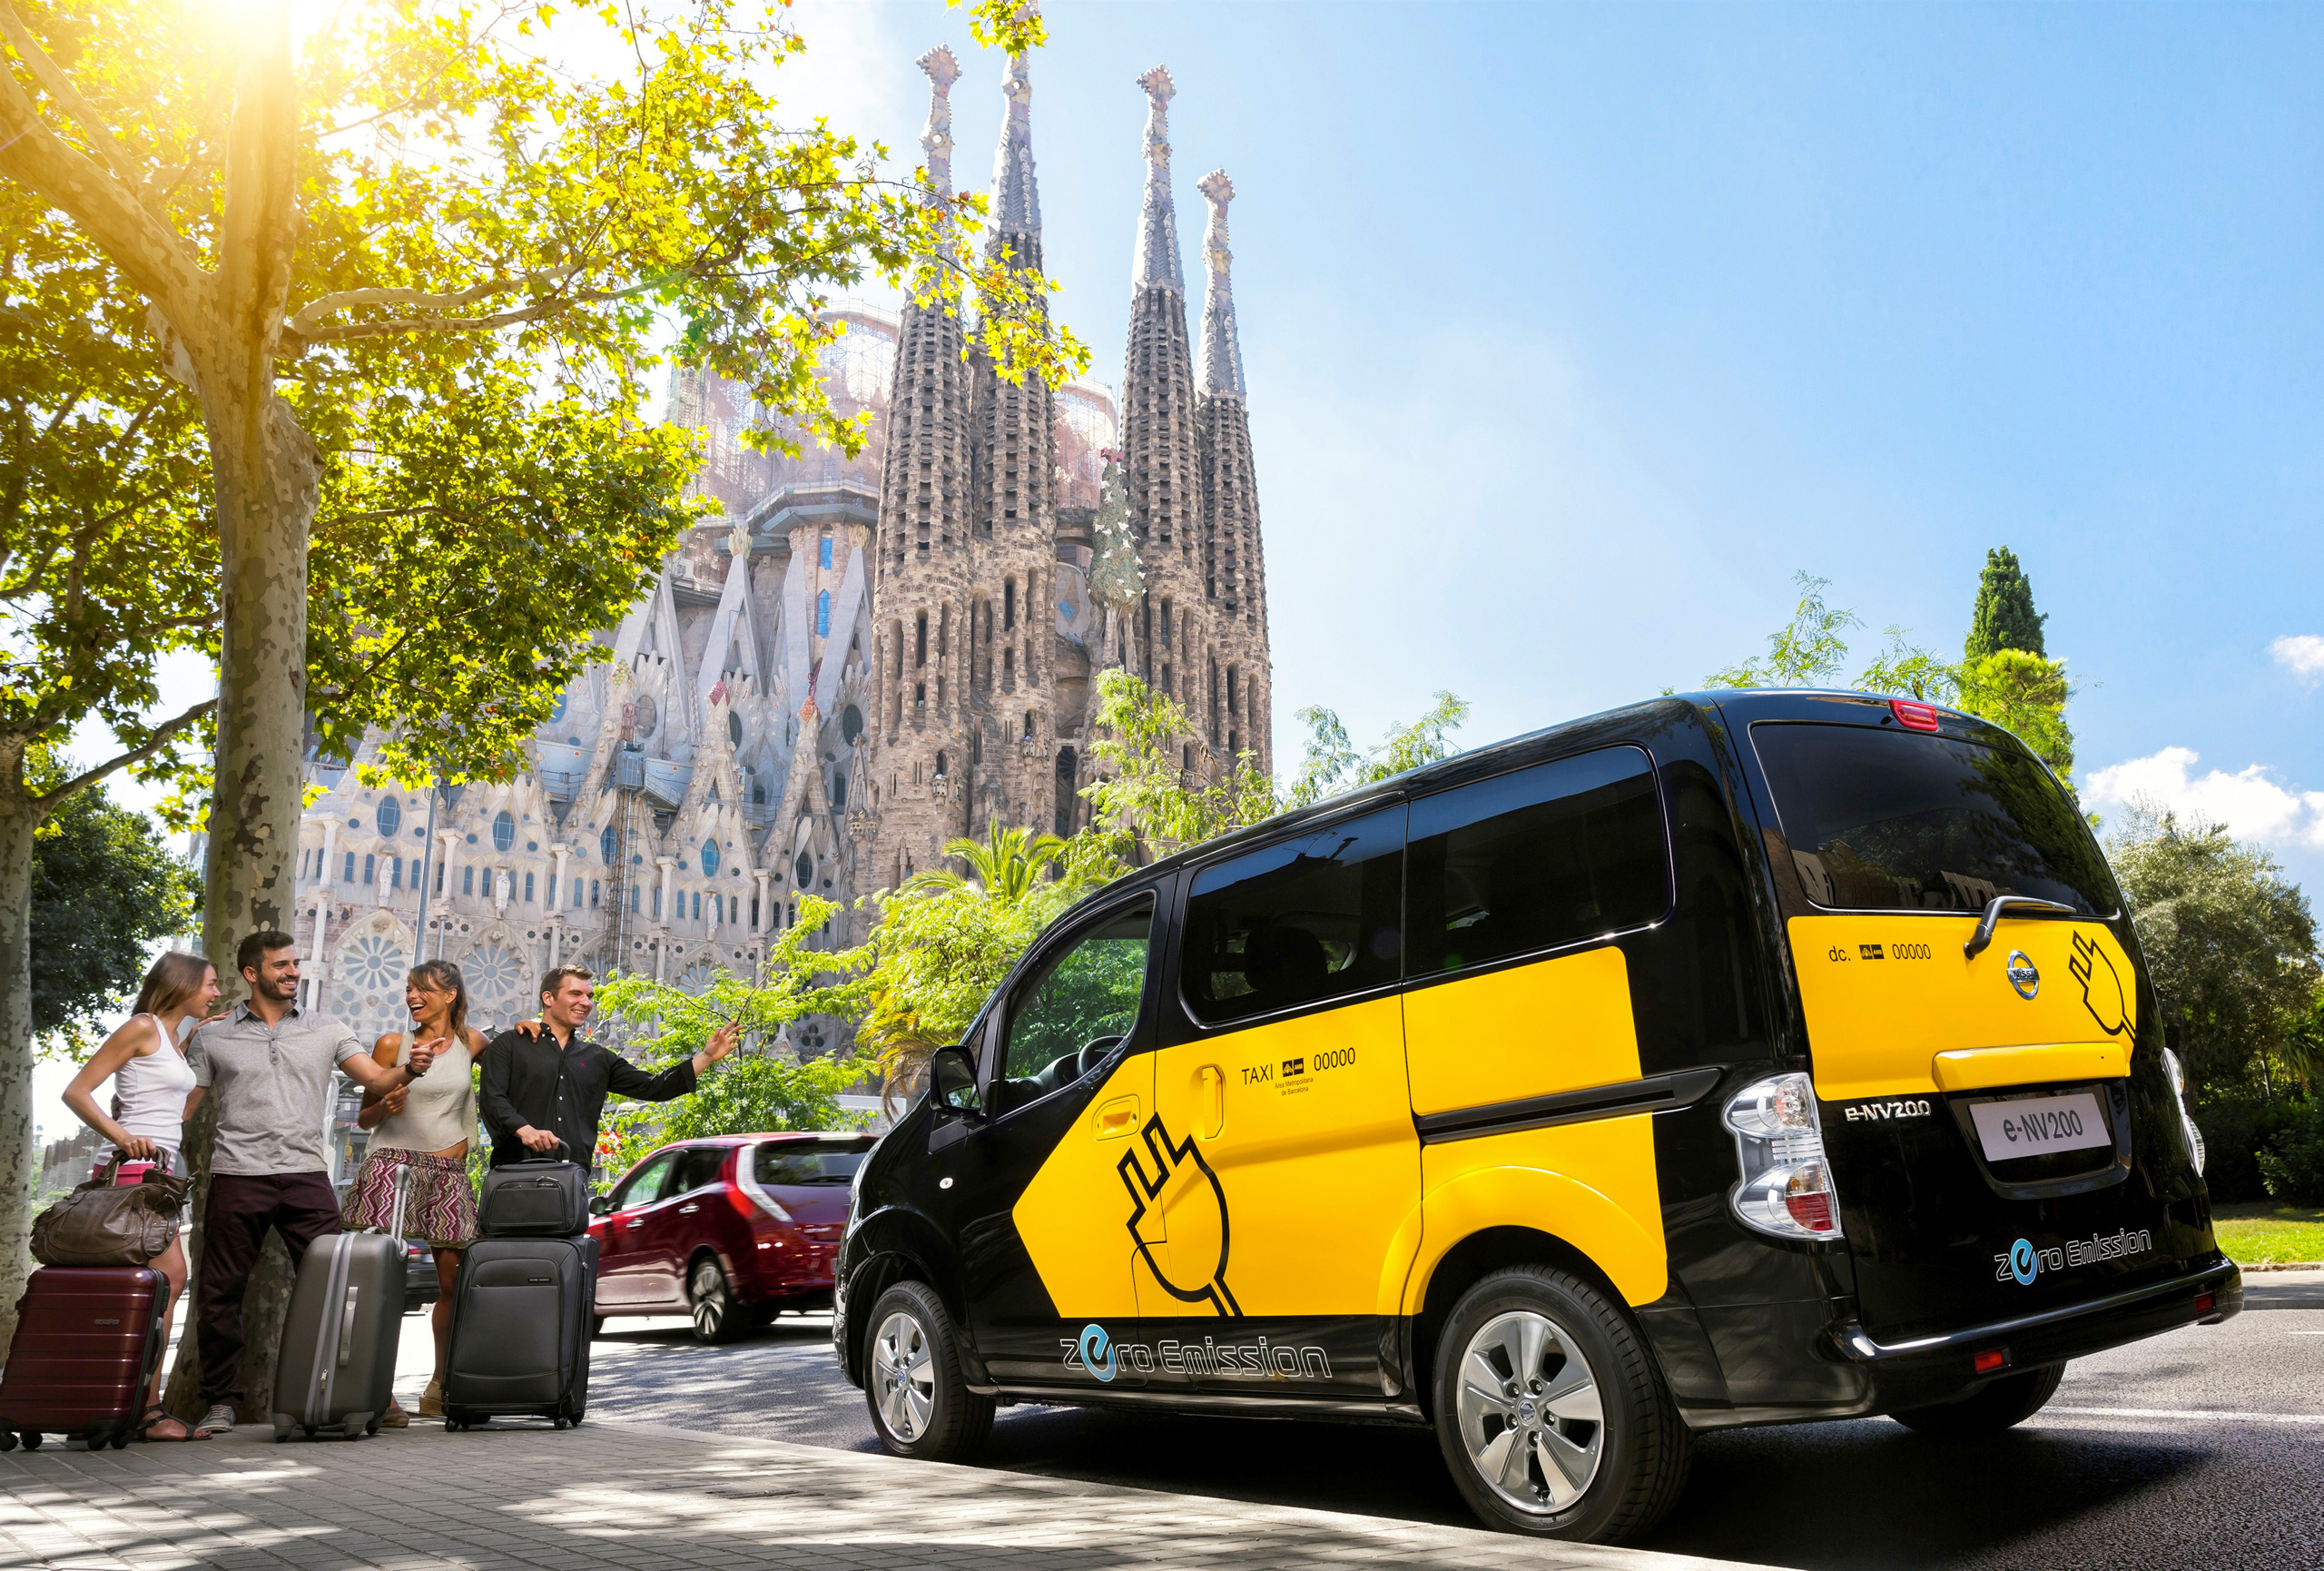 Barcelona to use nissan e nv200 electric taxi cabs image 198195 - Cab in barcelona ...